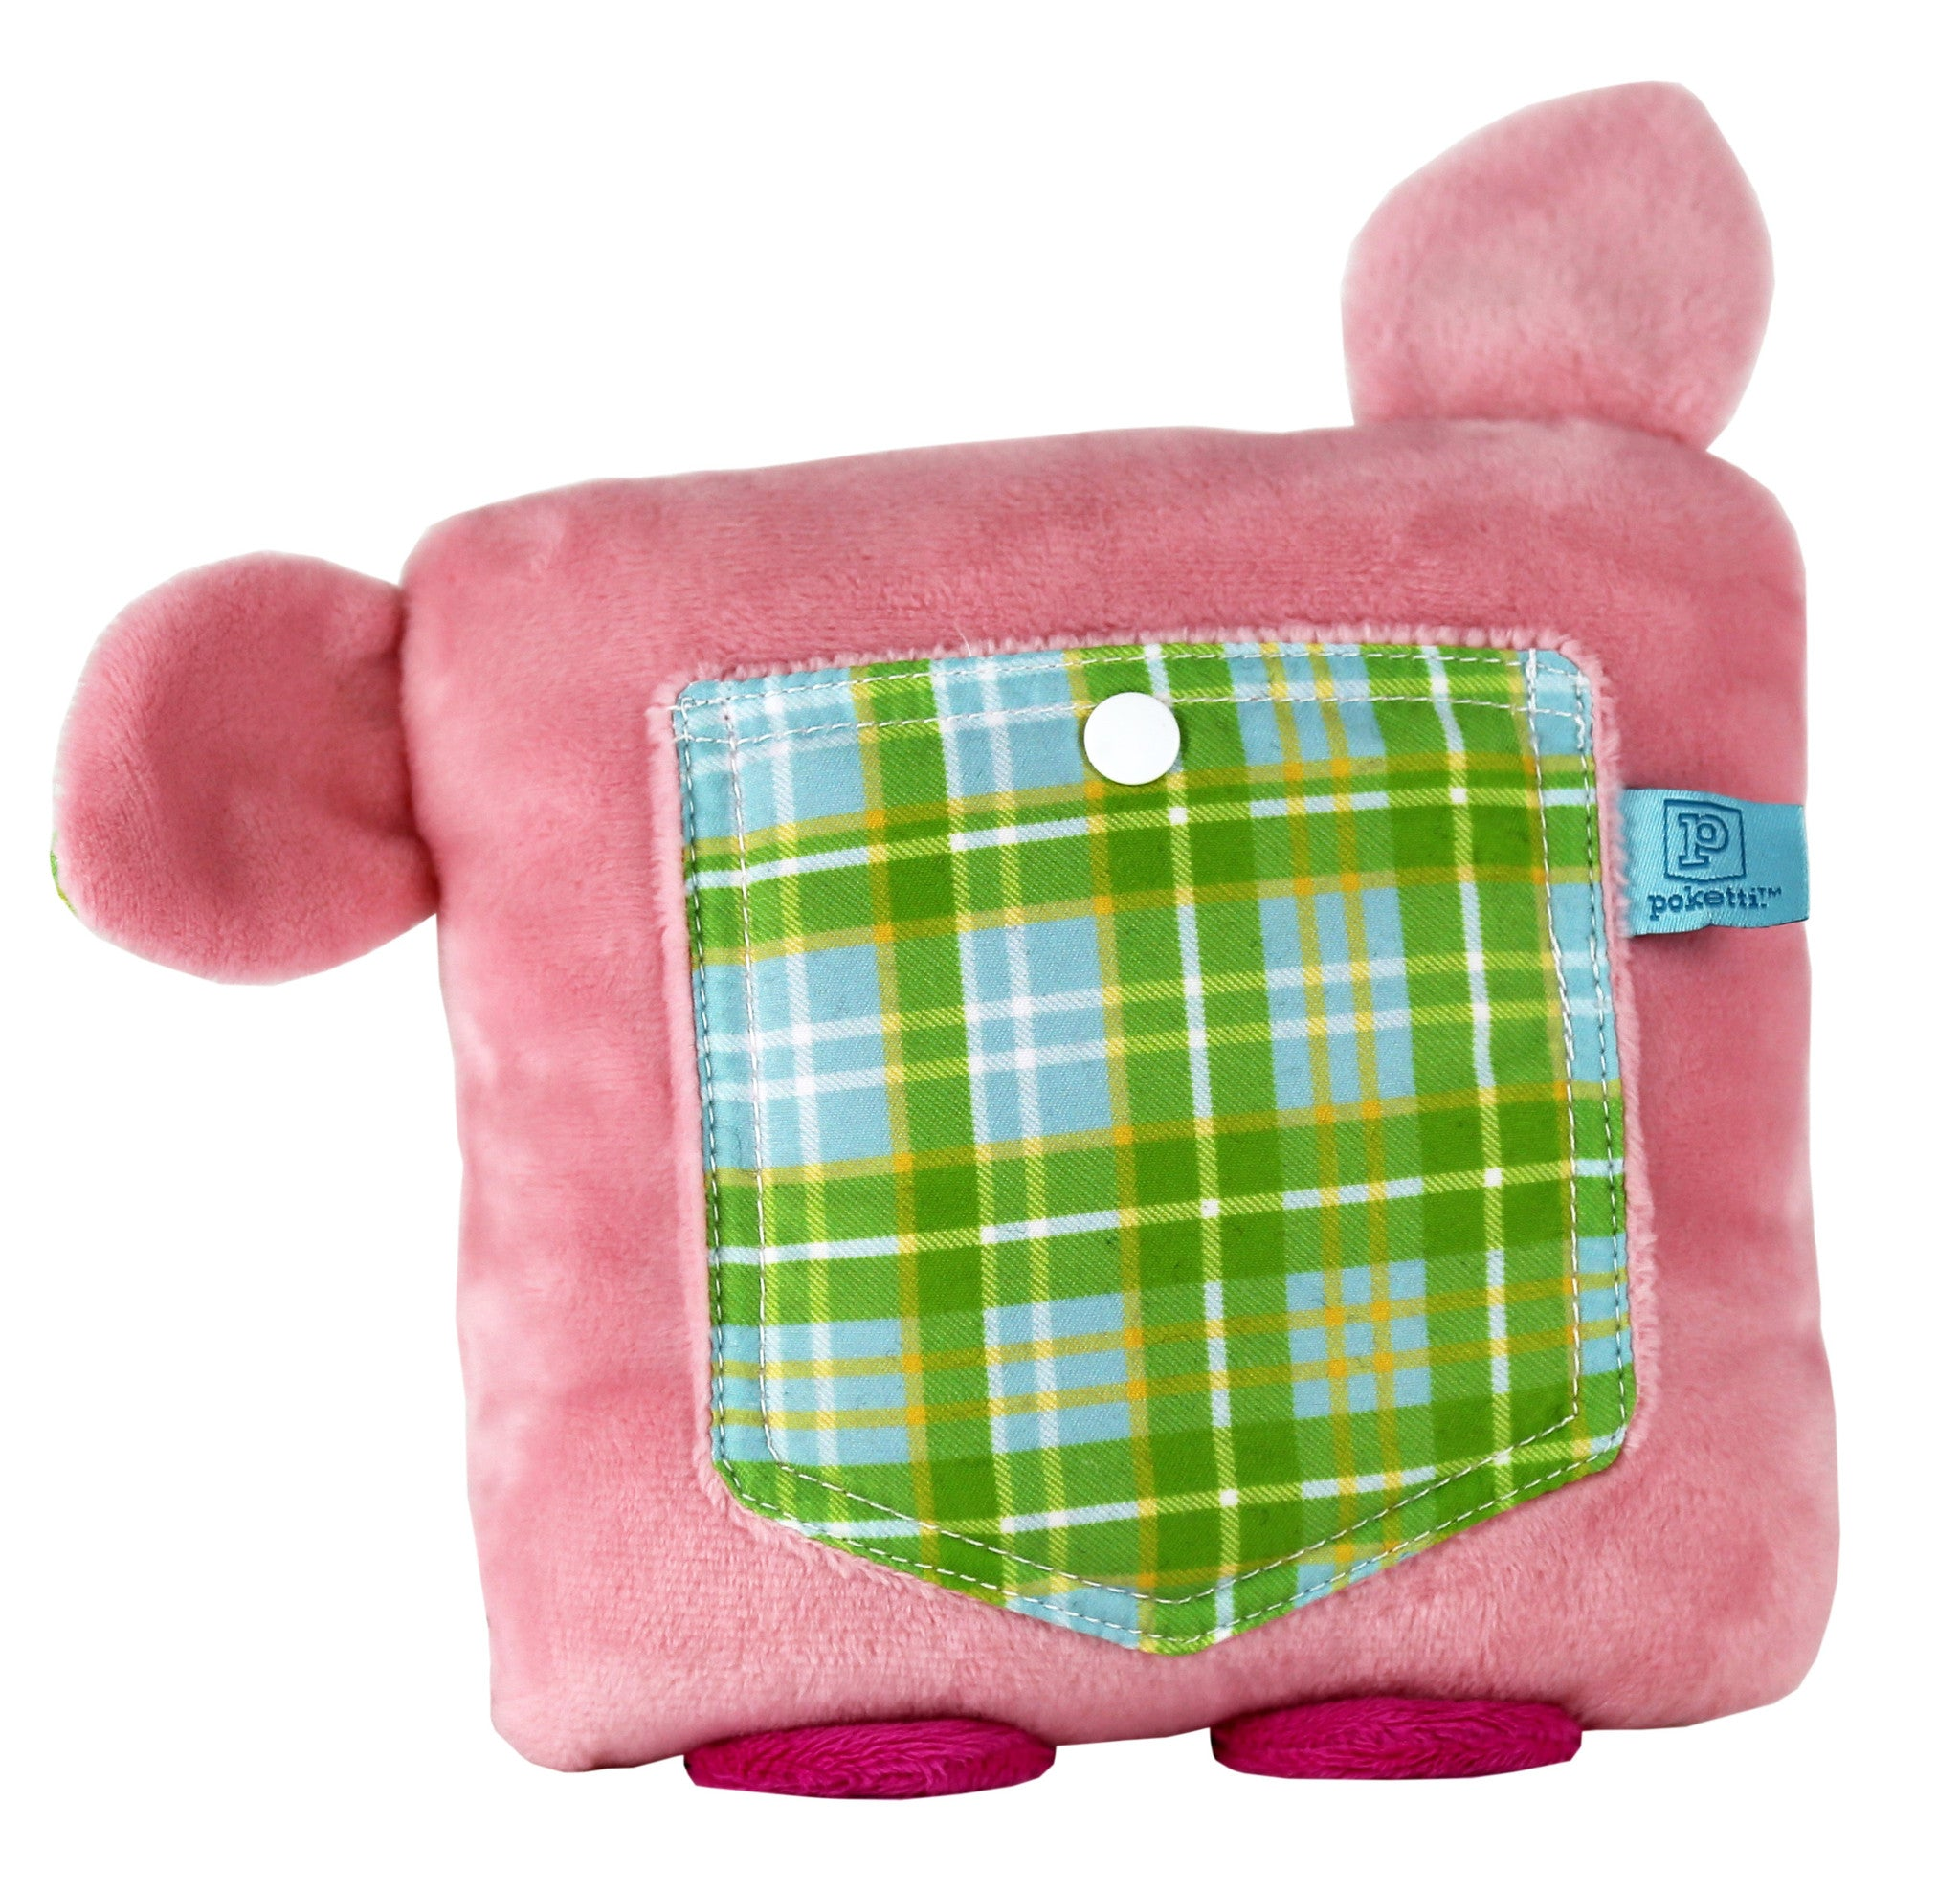 Plush toy pig stuffed animal with a useful back pocket - pocket detail